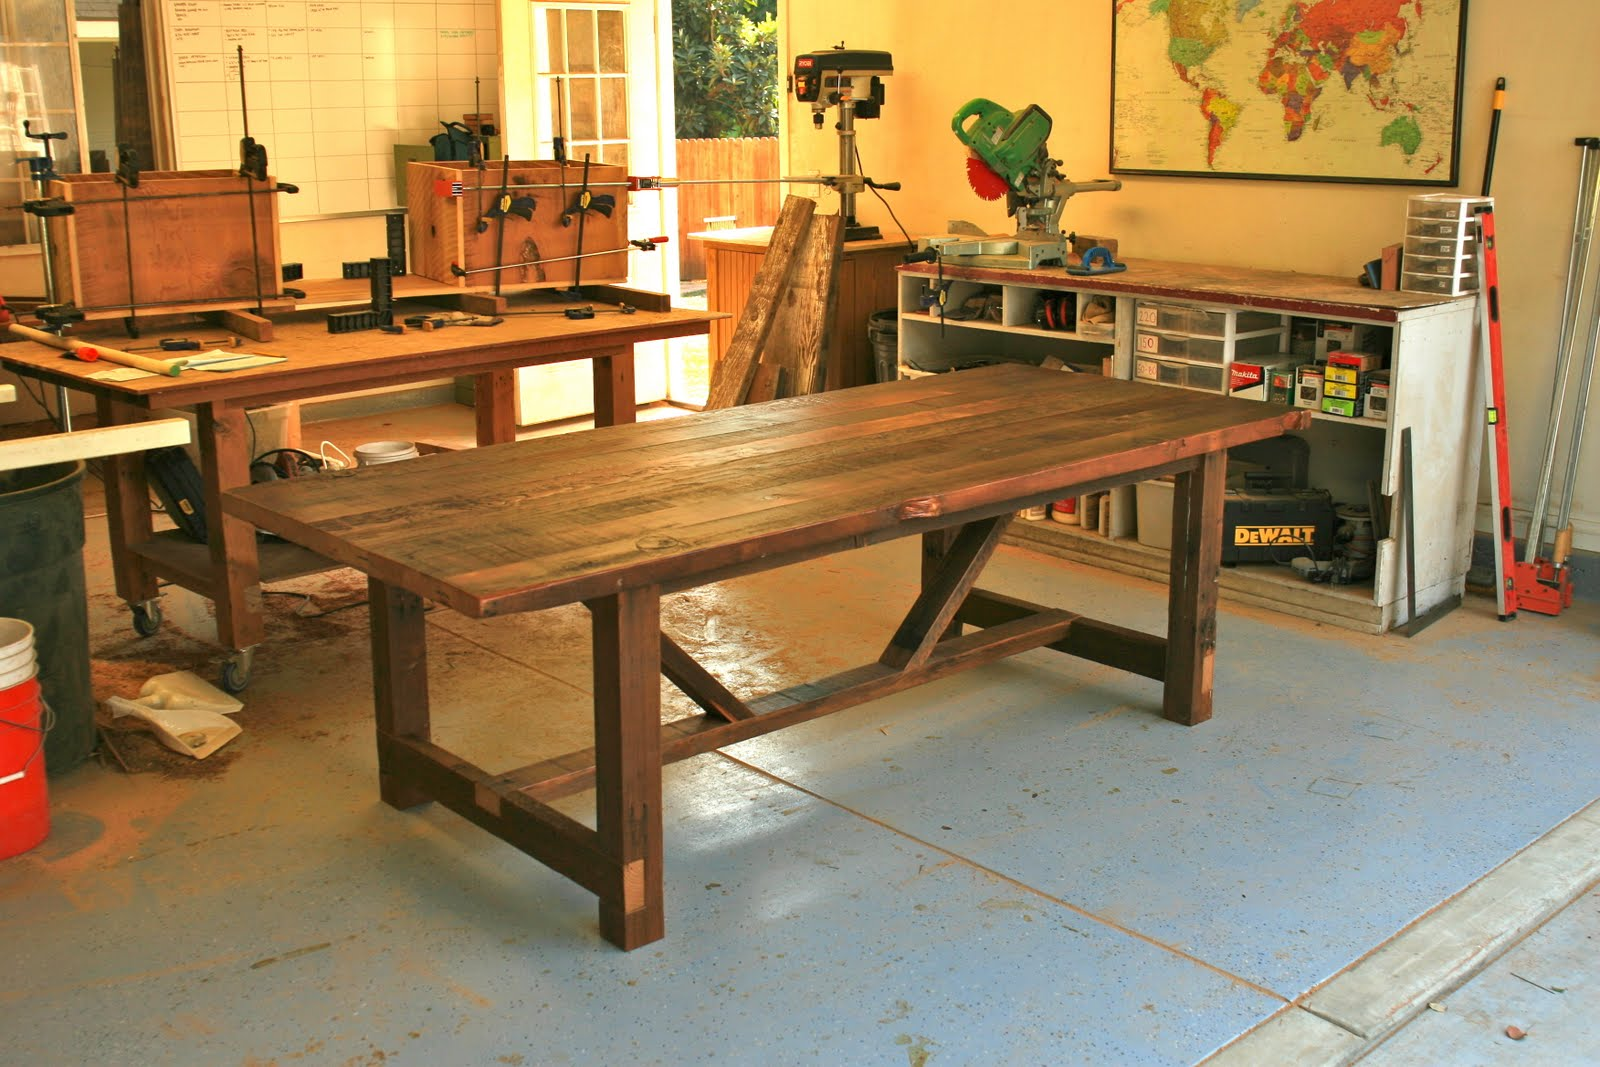 Charmant We Finished This 8u0027 Trestle Table + Bench For A Client From Topanga Canyon  On Friday. The Table Top Features Old Growth Doug Fir That Was Salvaged  From A ...